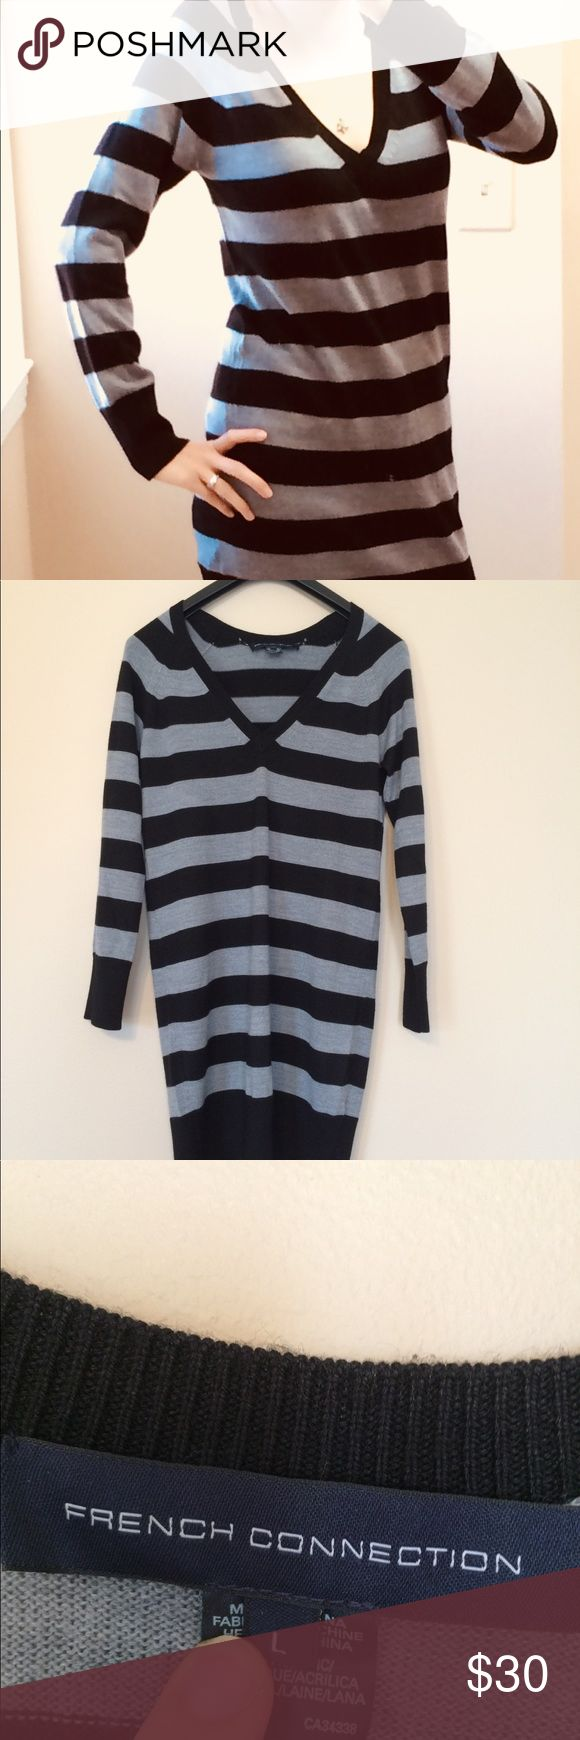 """French Connection Sweater Dress/Tunic I love this black and gray sweater dress. It is in great used condition with no stains or rips that I can see. Right in time for the winter season! Buy this wardrobe staple while it is still available!    Offers are always welcome! Thanks for looking!  Measurements: Shoulder to hem: 34.5"""" Armpit to armpit: 18"""" Sleeve: 27"""" French Connection Tops Tunics"""